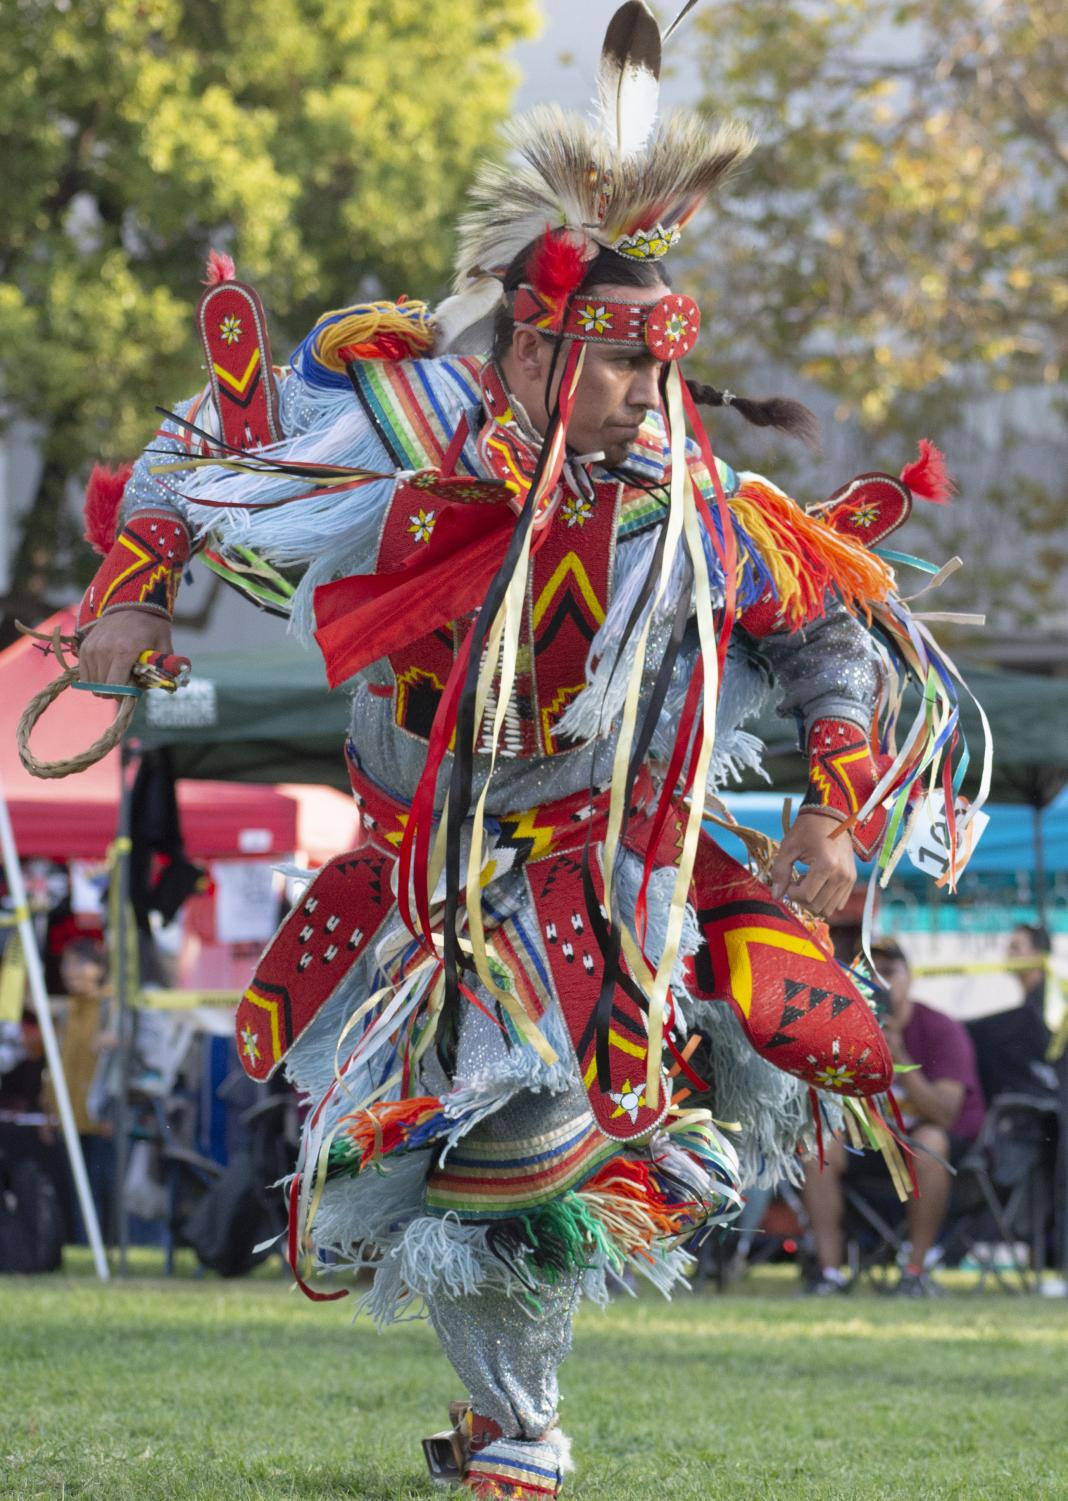 An+adult+contest+dancer+competes+during+the+Berkeley+Indigenous+Peoples+Day+Pow+Wow+on+Oct.+12+at+Martin+Luther+King+Civic+Center+Park+in+Berkeley%2C+California.